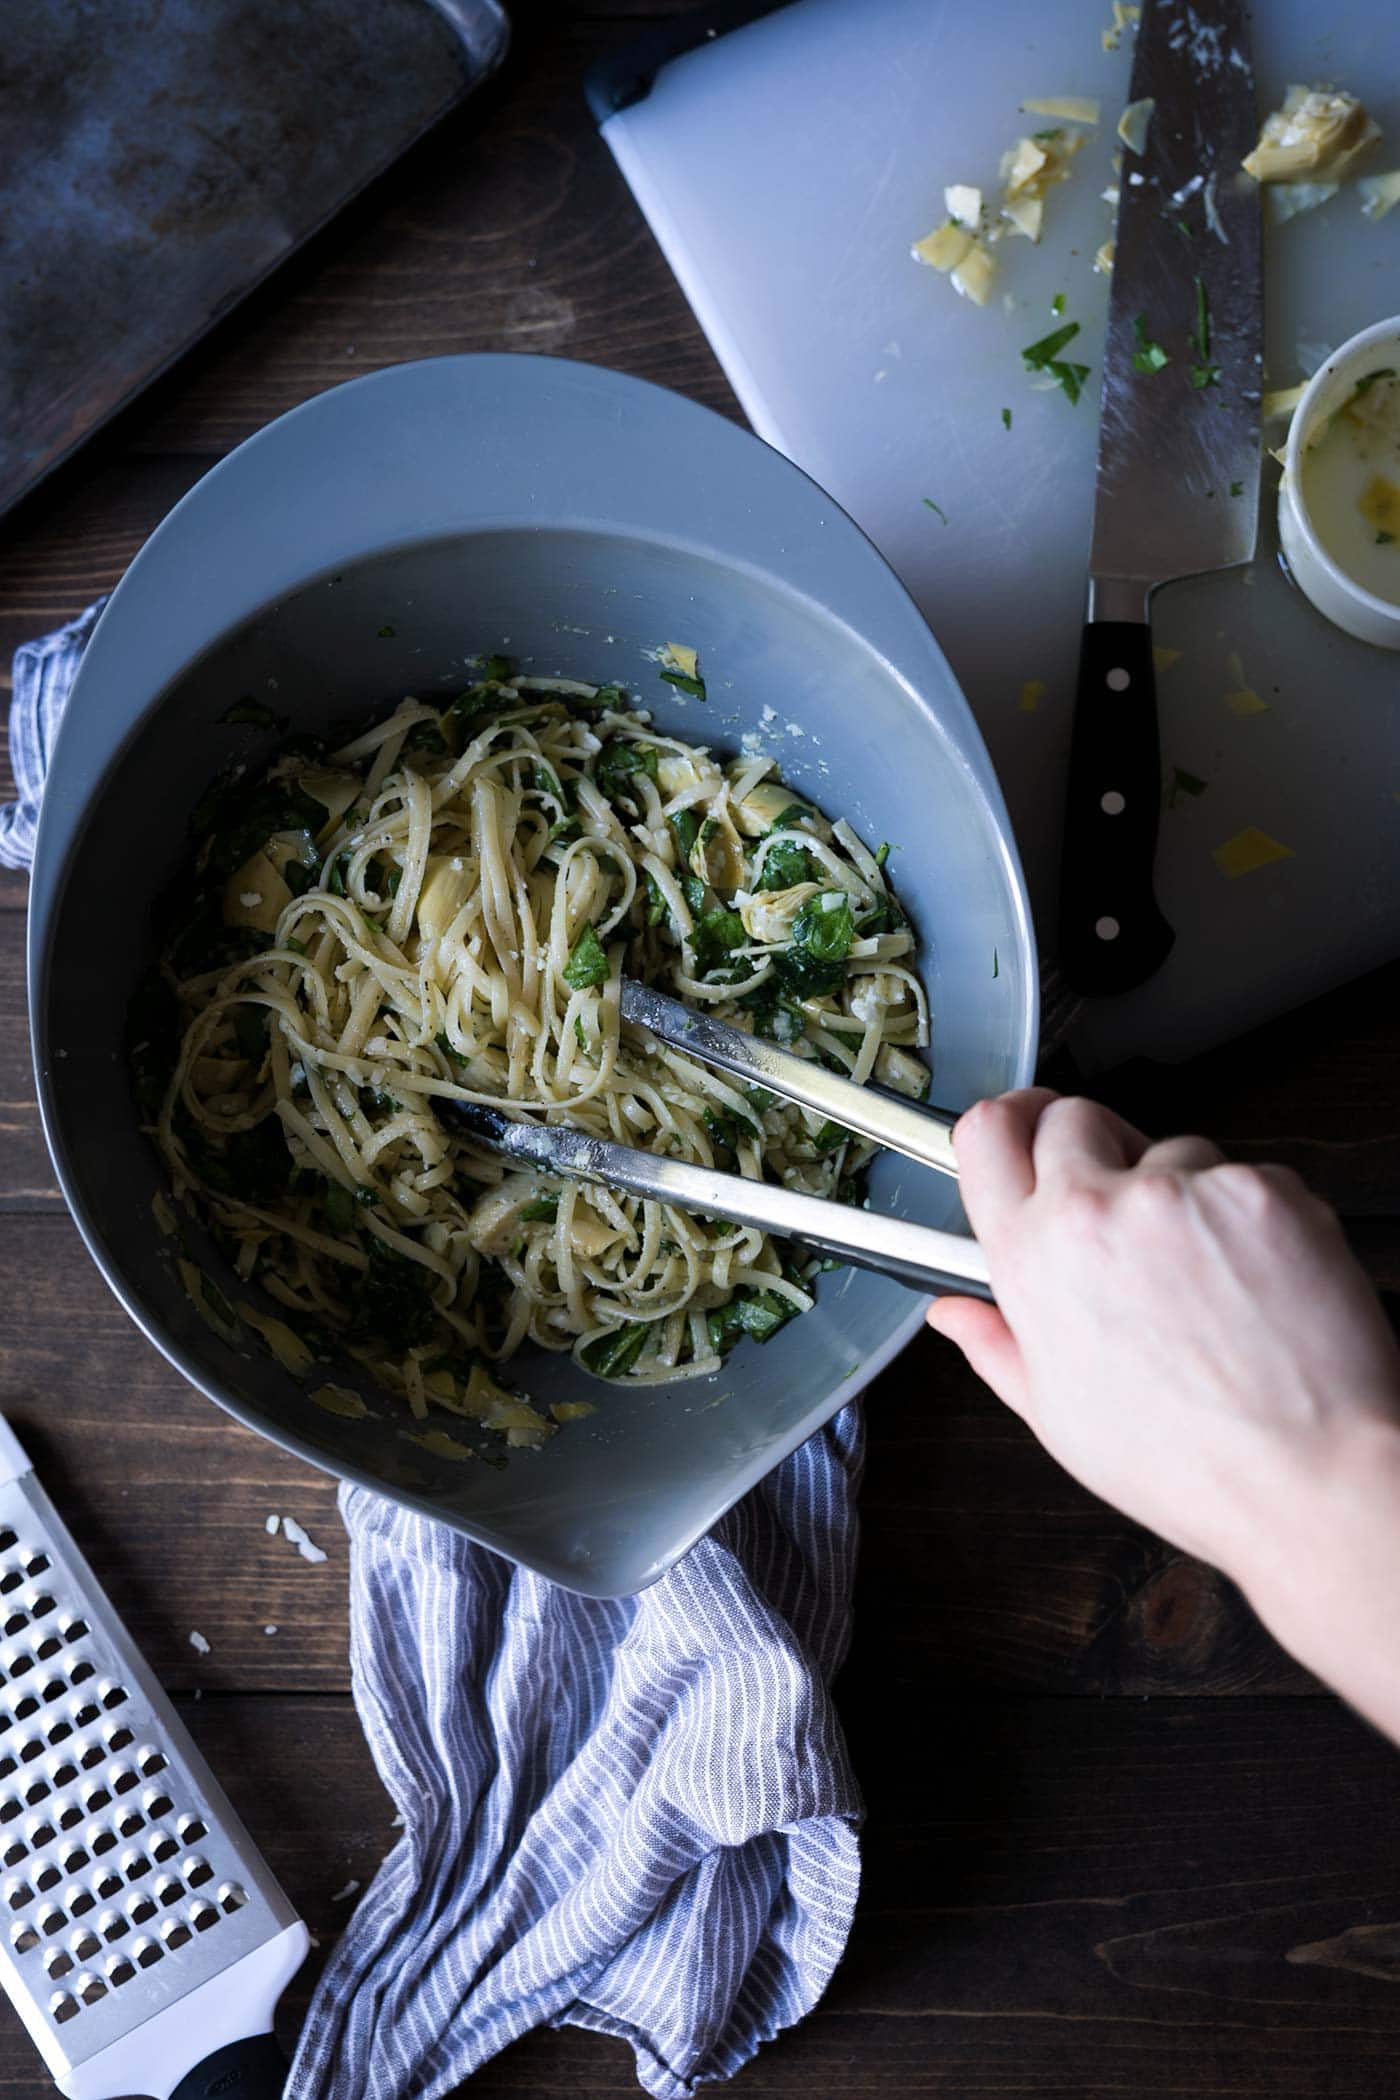 spinach and artichoke pasta ingredients being combined in a bowl